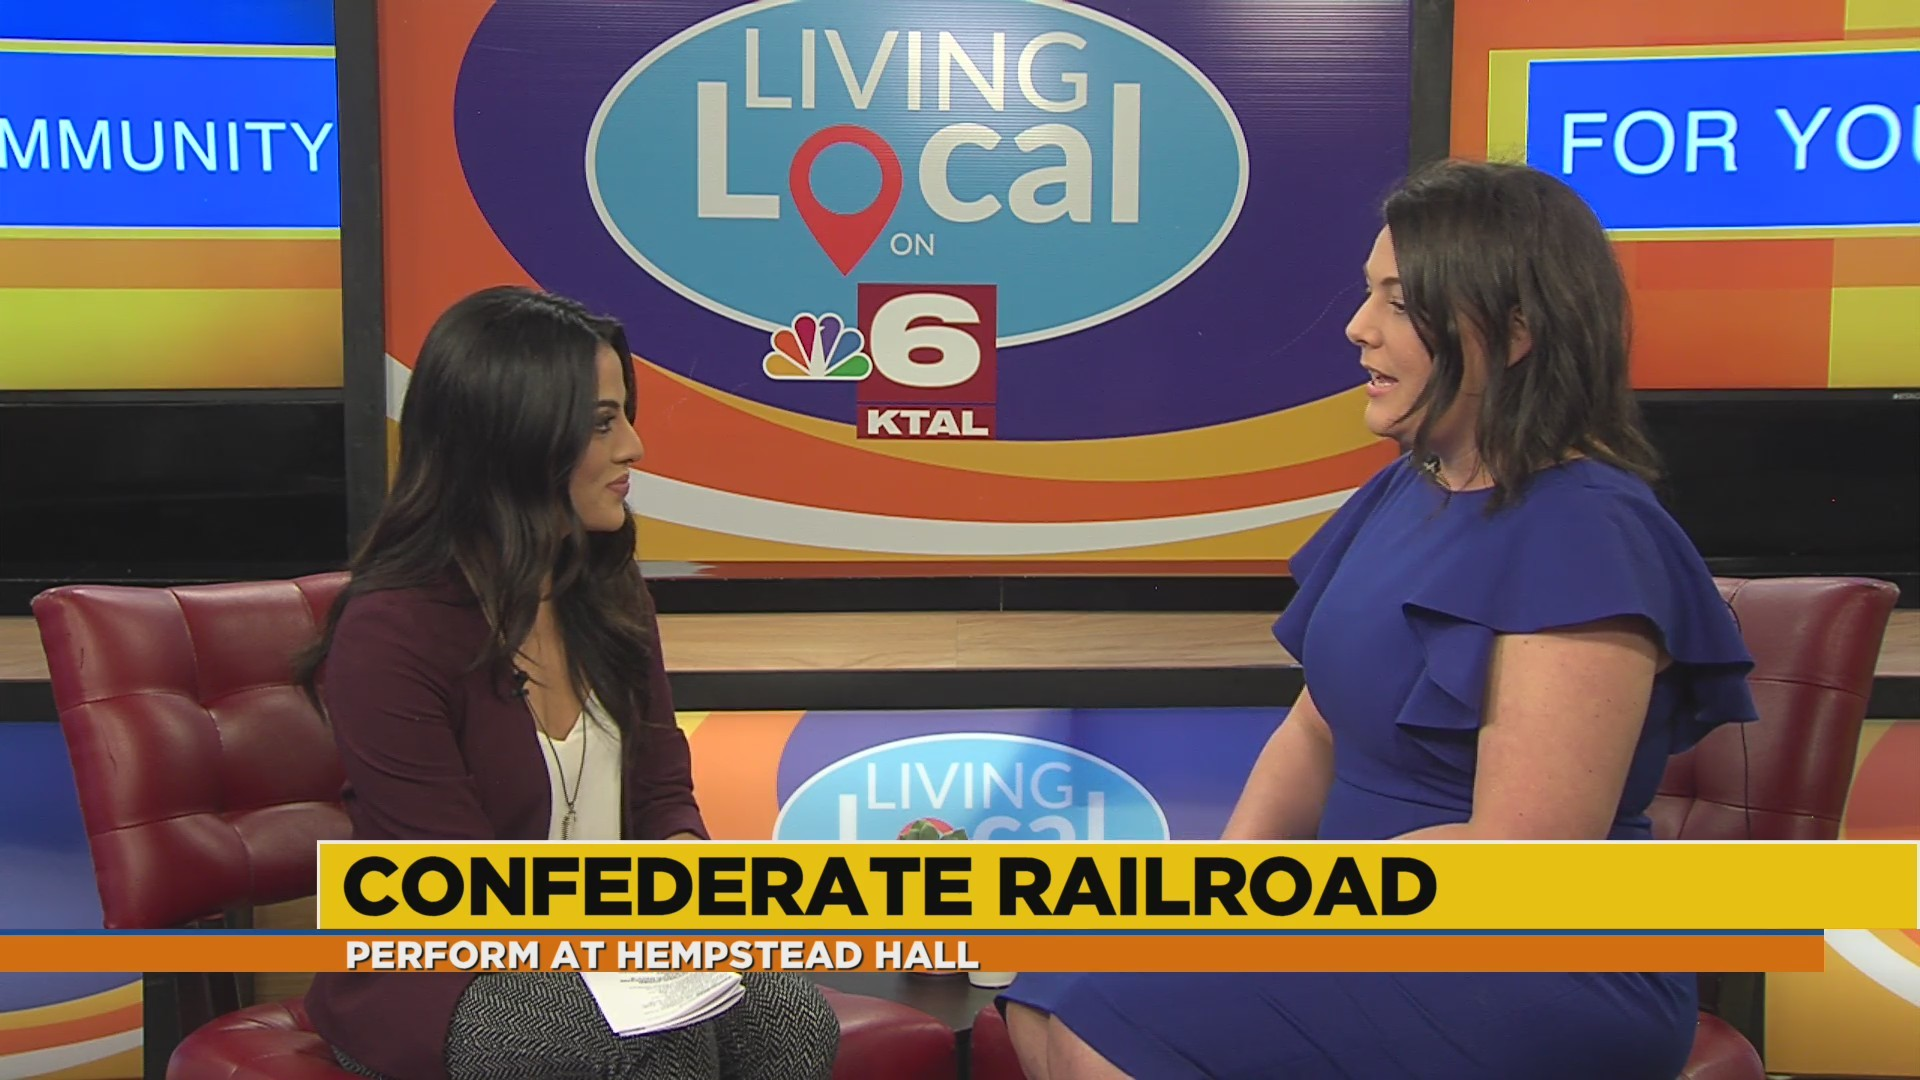 Confederate Railroad to perform at Hempstead Hall